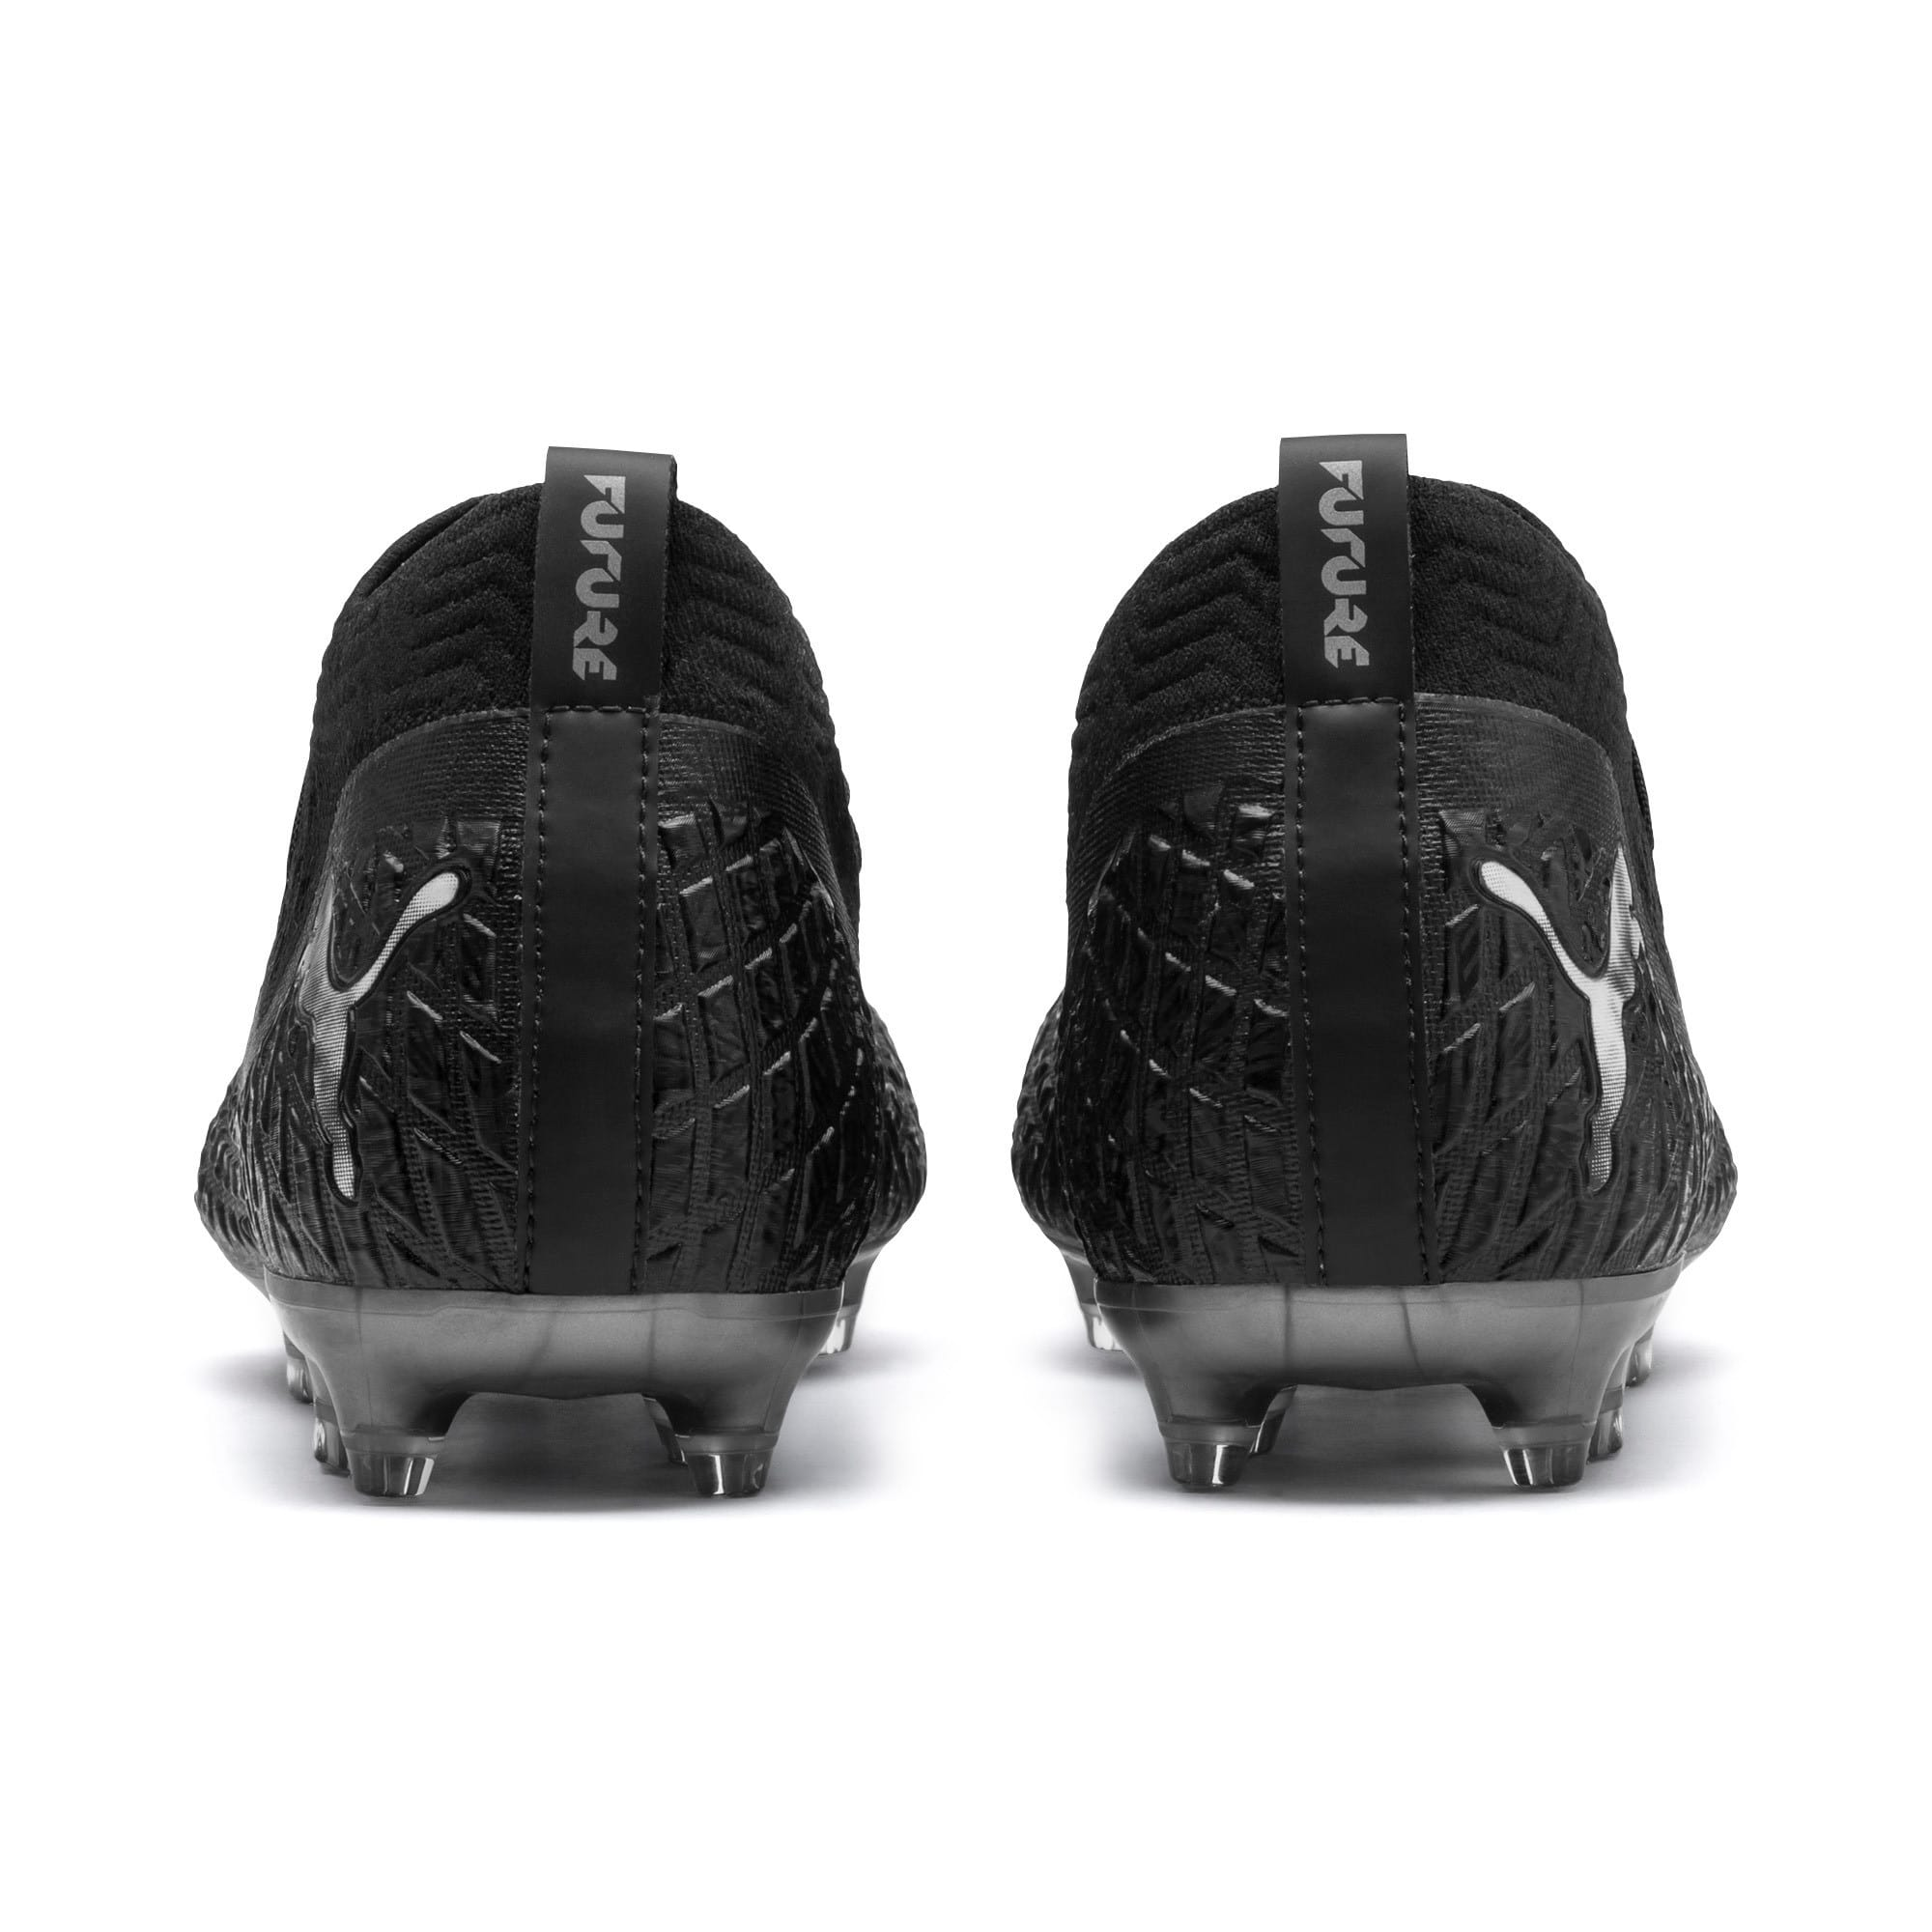 Thumbnail 4 of FUTURE 4.2 NETFIT FG/AG Men's Soccer Cleats, Black-Black-Puma Aged Silver, medium